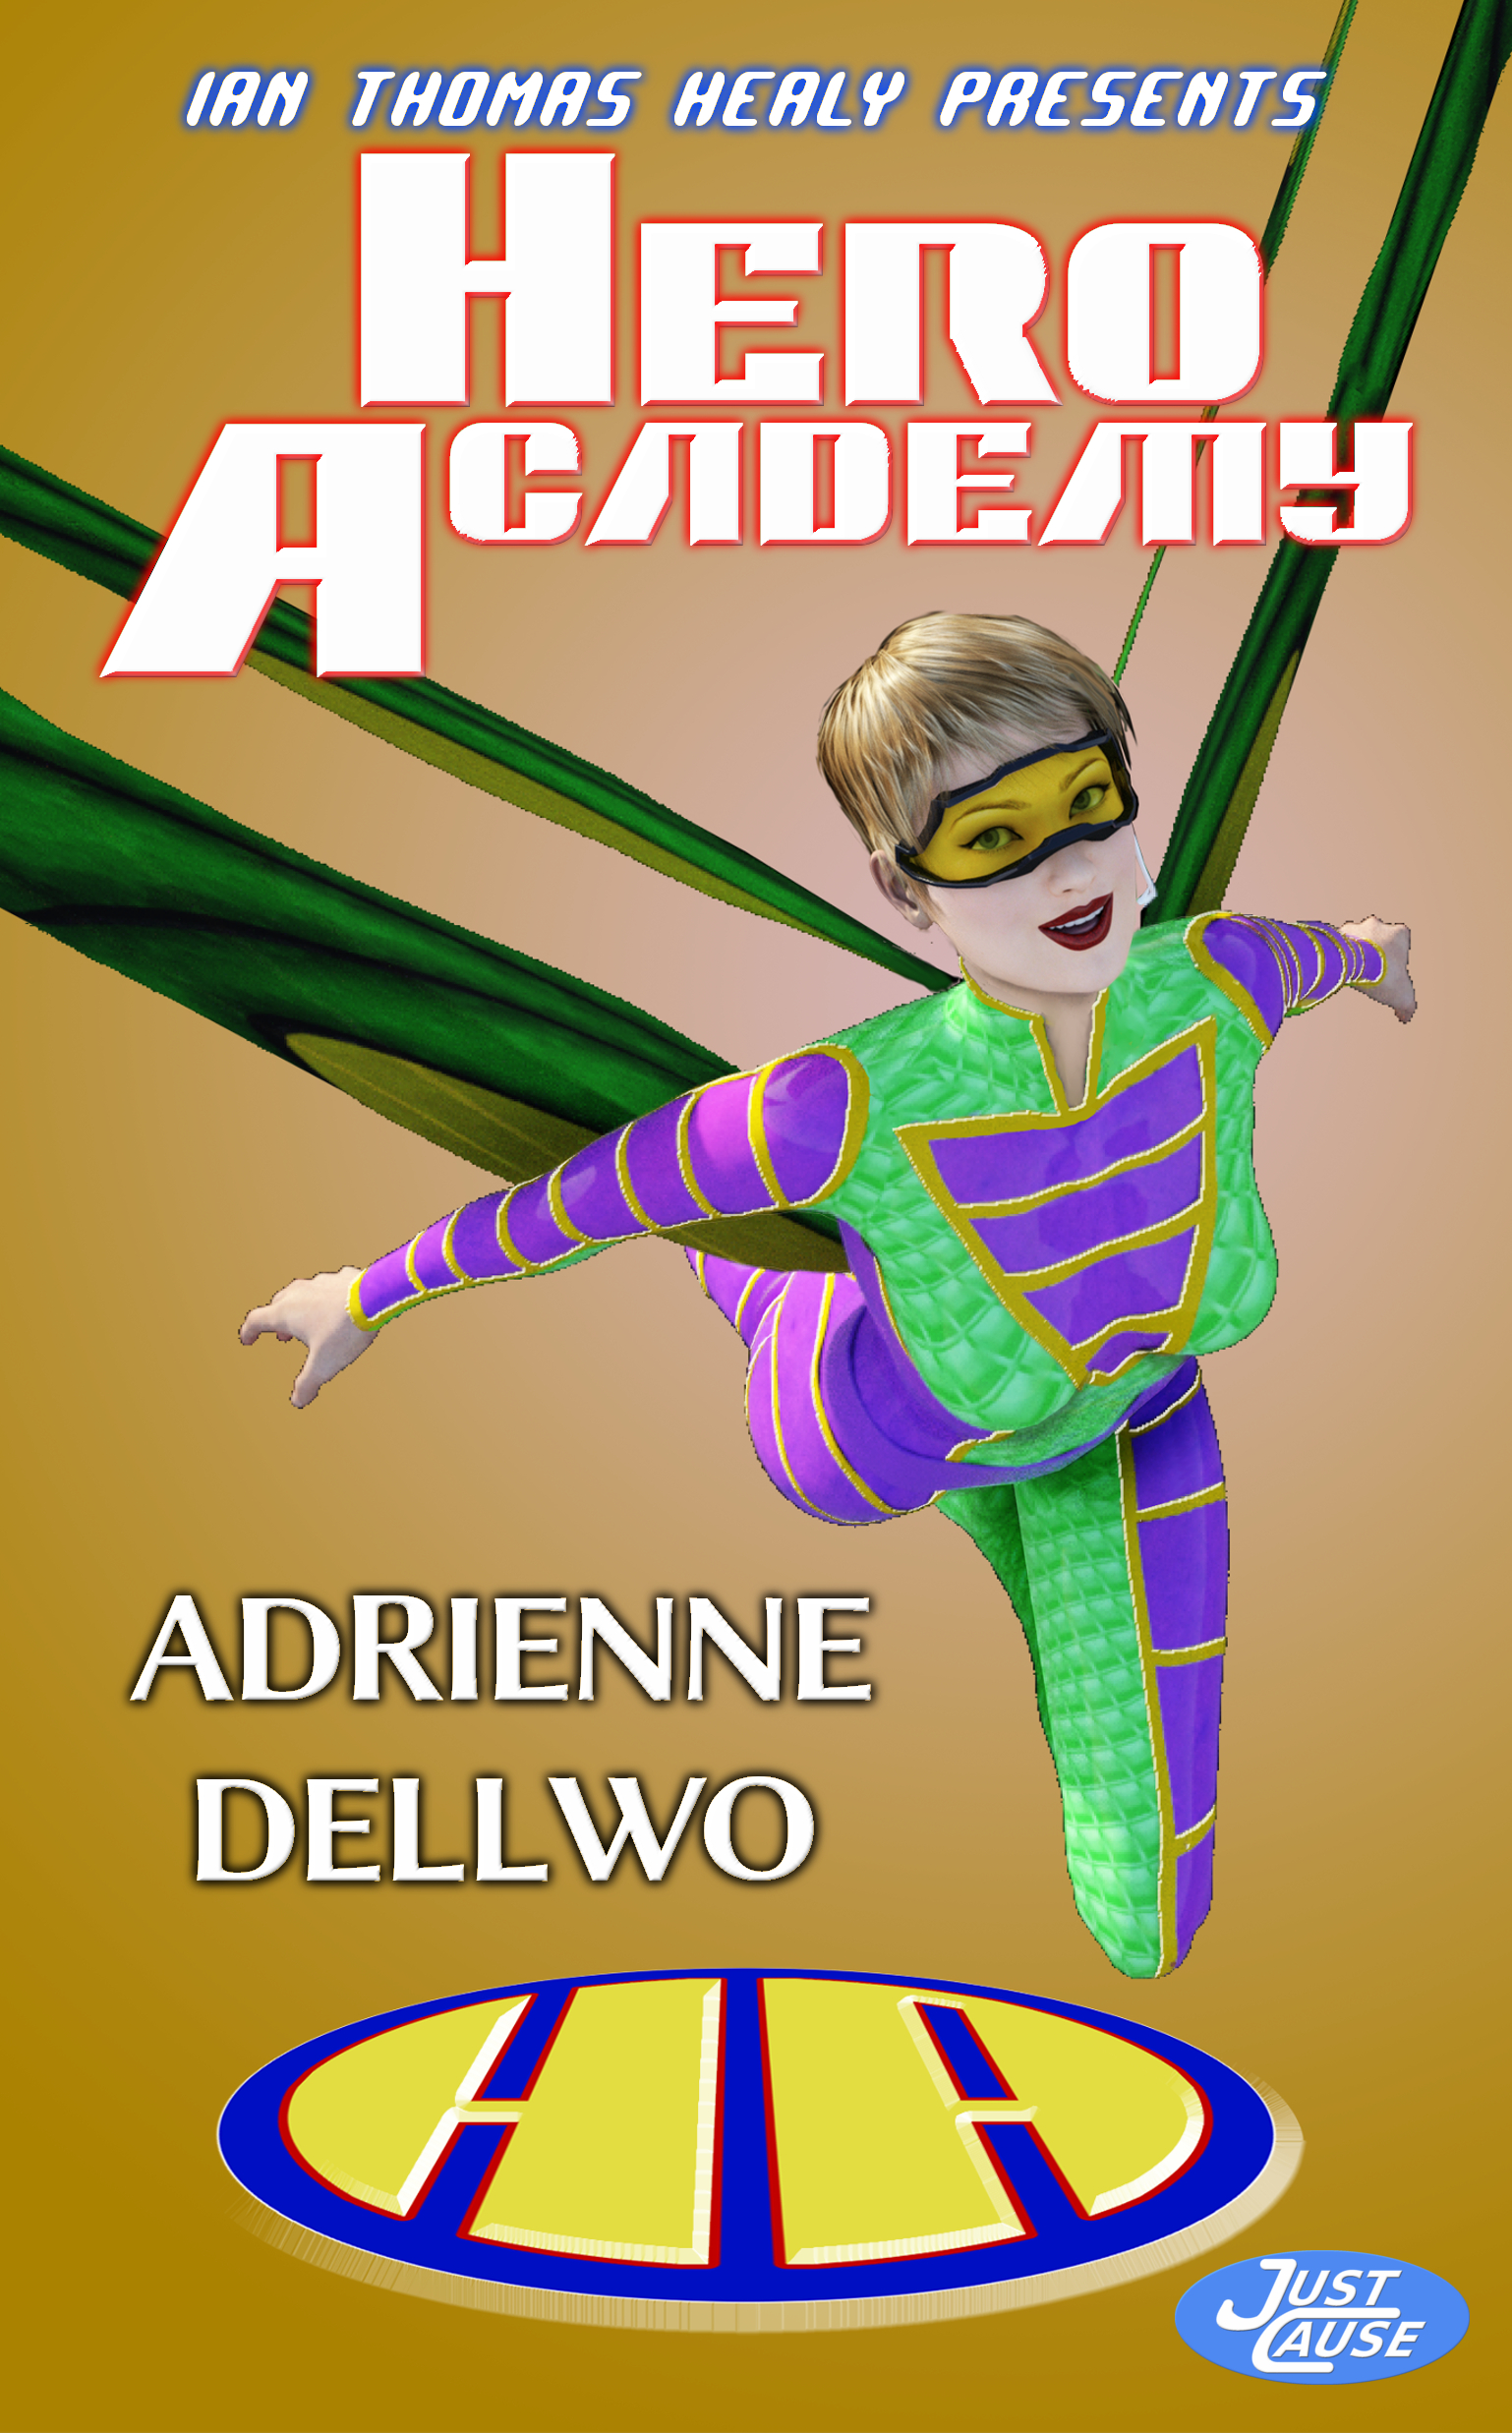 hero academy, just cause, just cause universe, adrienne dellwo, ian thomas healy, superhero, supervillain, high school, superpowers, young adult